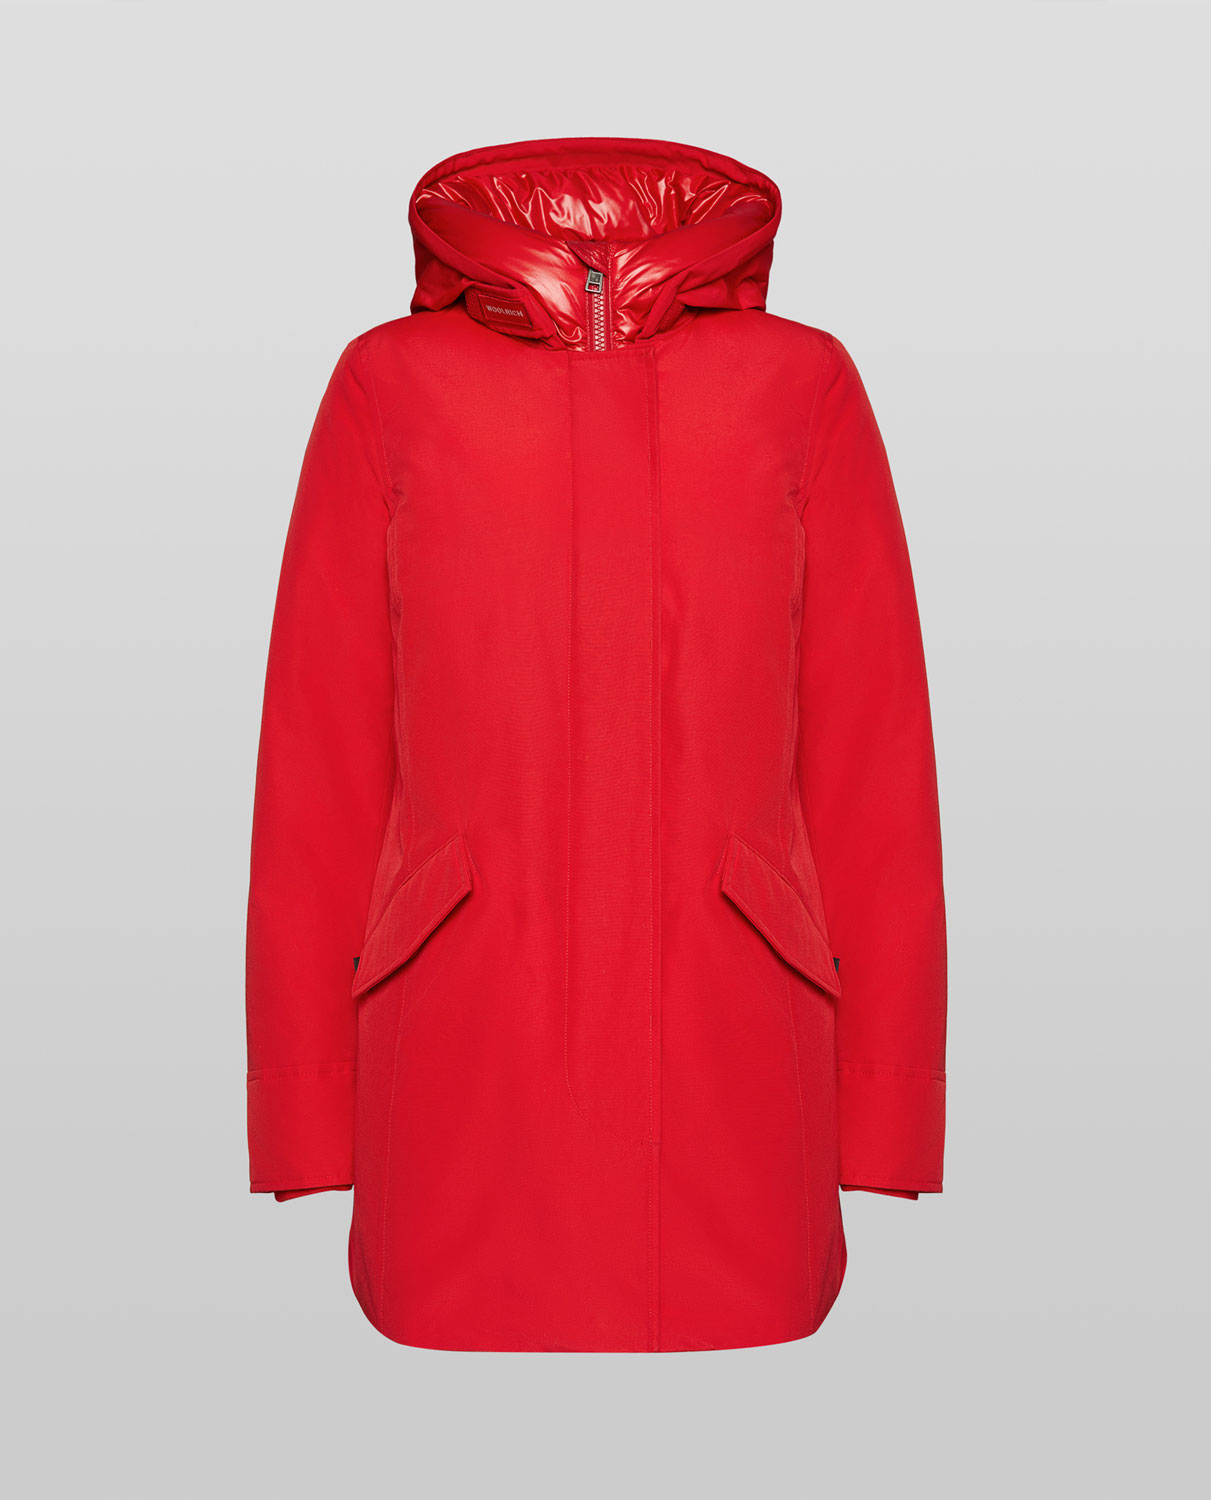 WOOLRICH DONNA WS ARTIC NF ROSSO